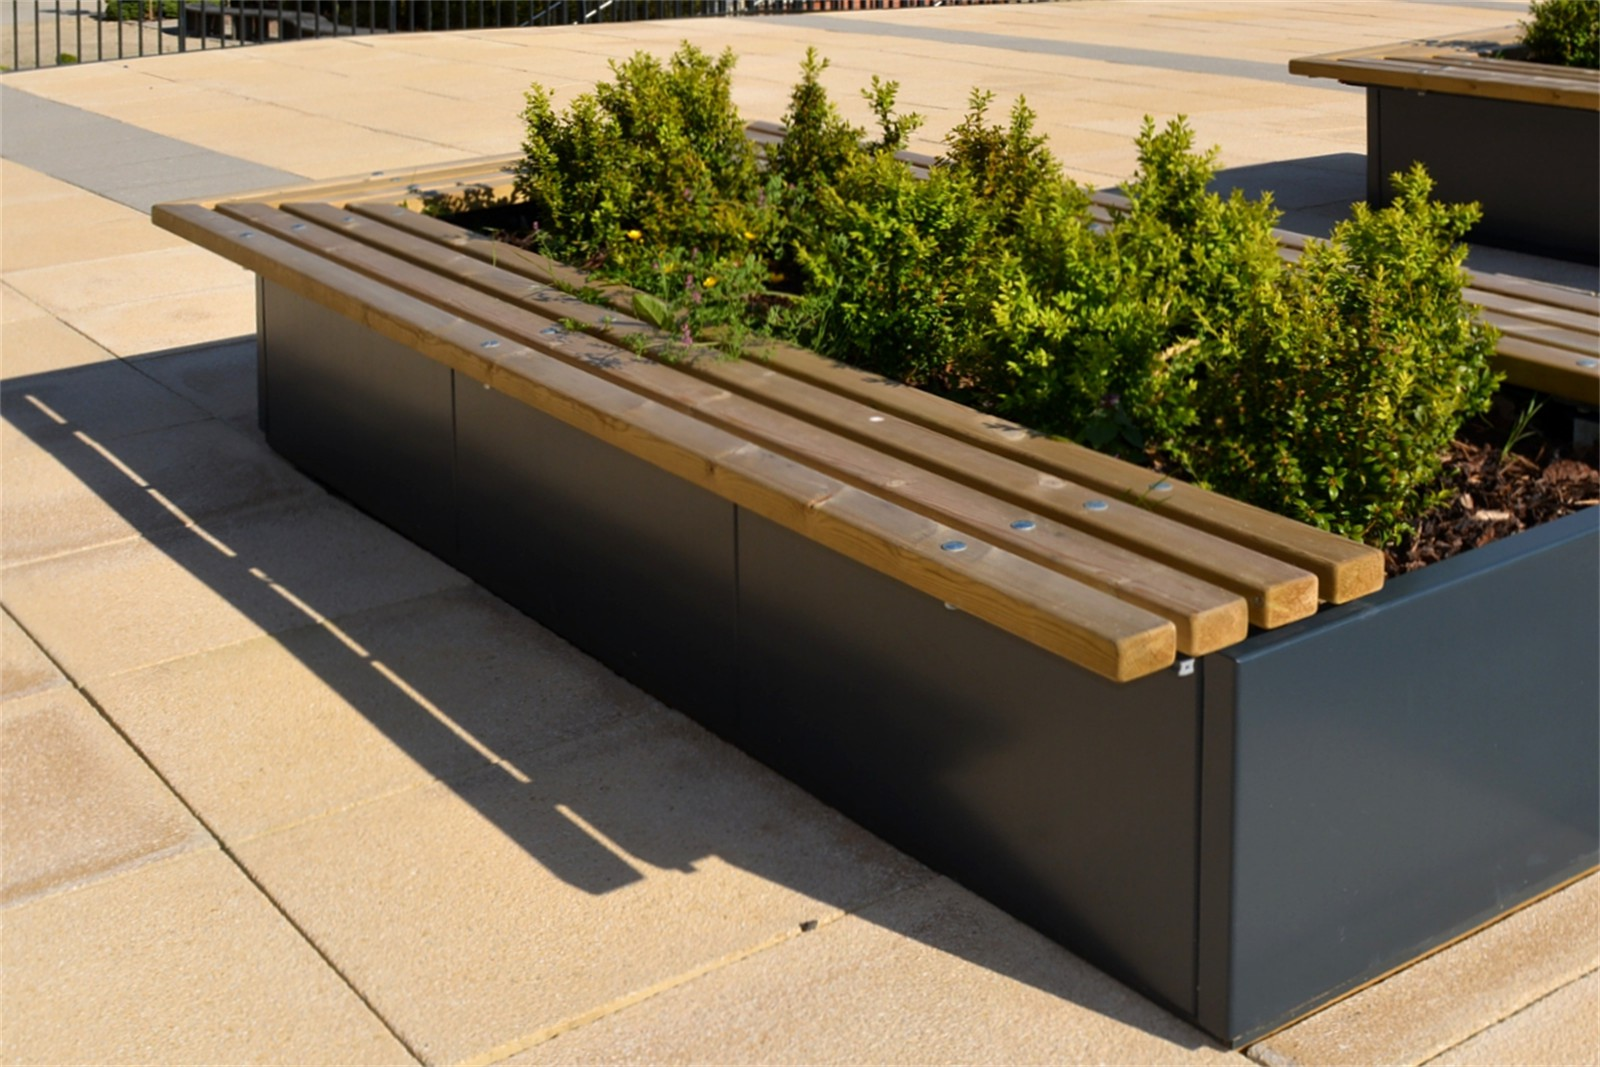 70sbe11 - Bexley top fixed planter bench